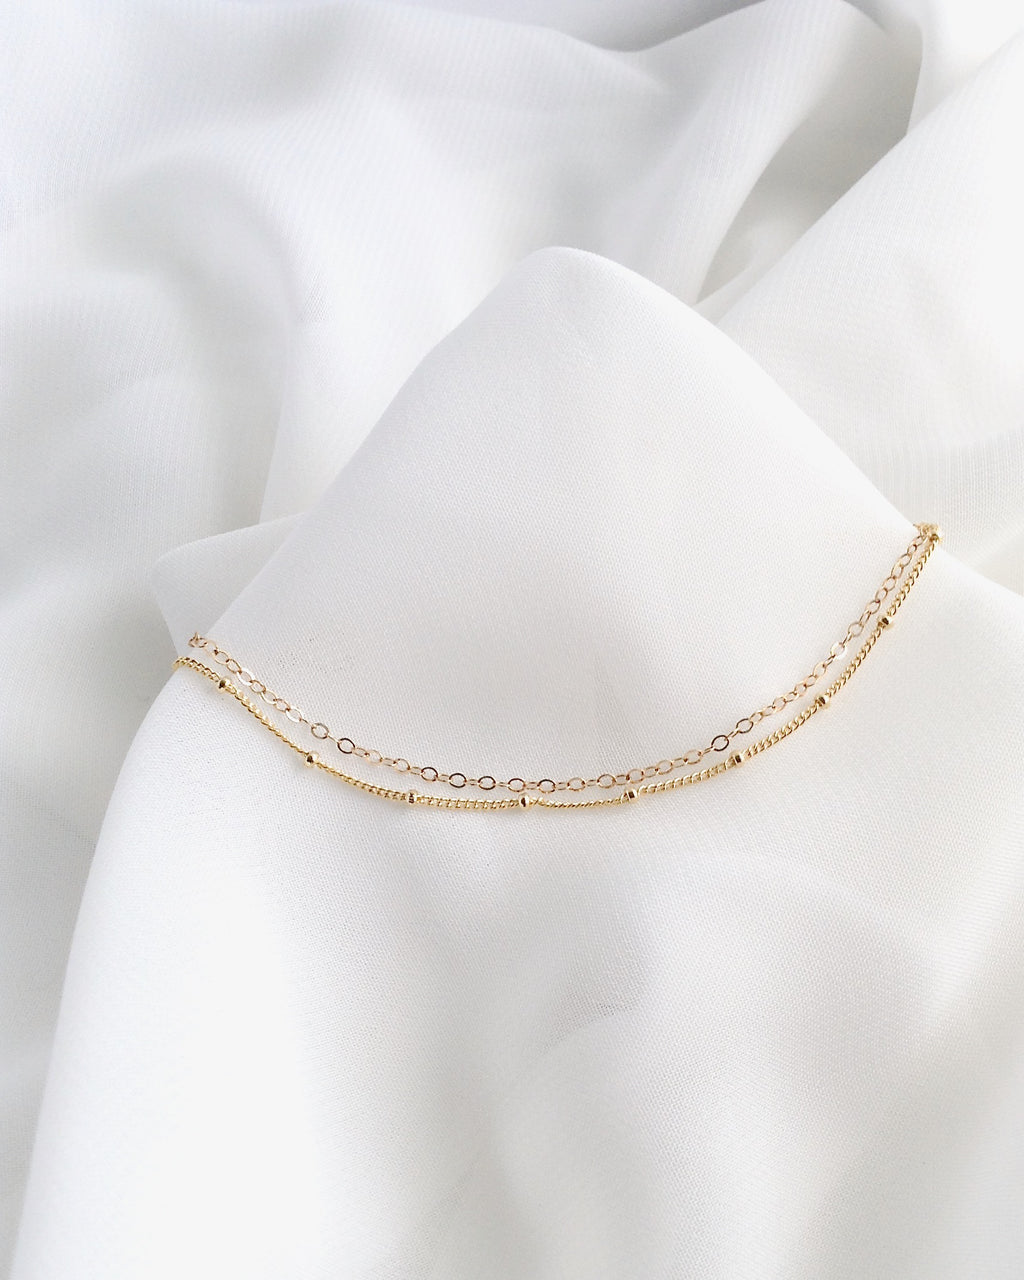 Dainty Anklet | Double Chain Ankle Bracelet | Minimalist Anklet | IB Jewelry